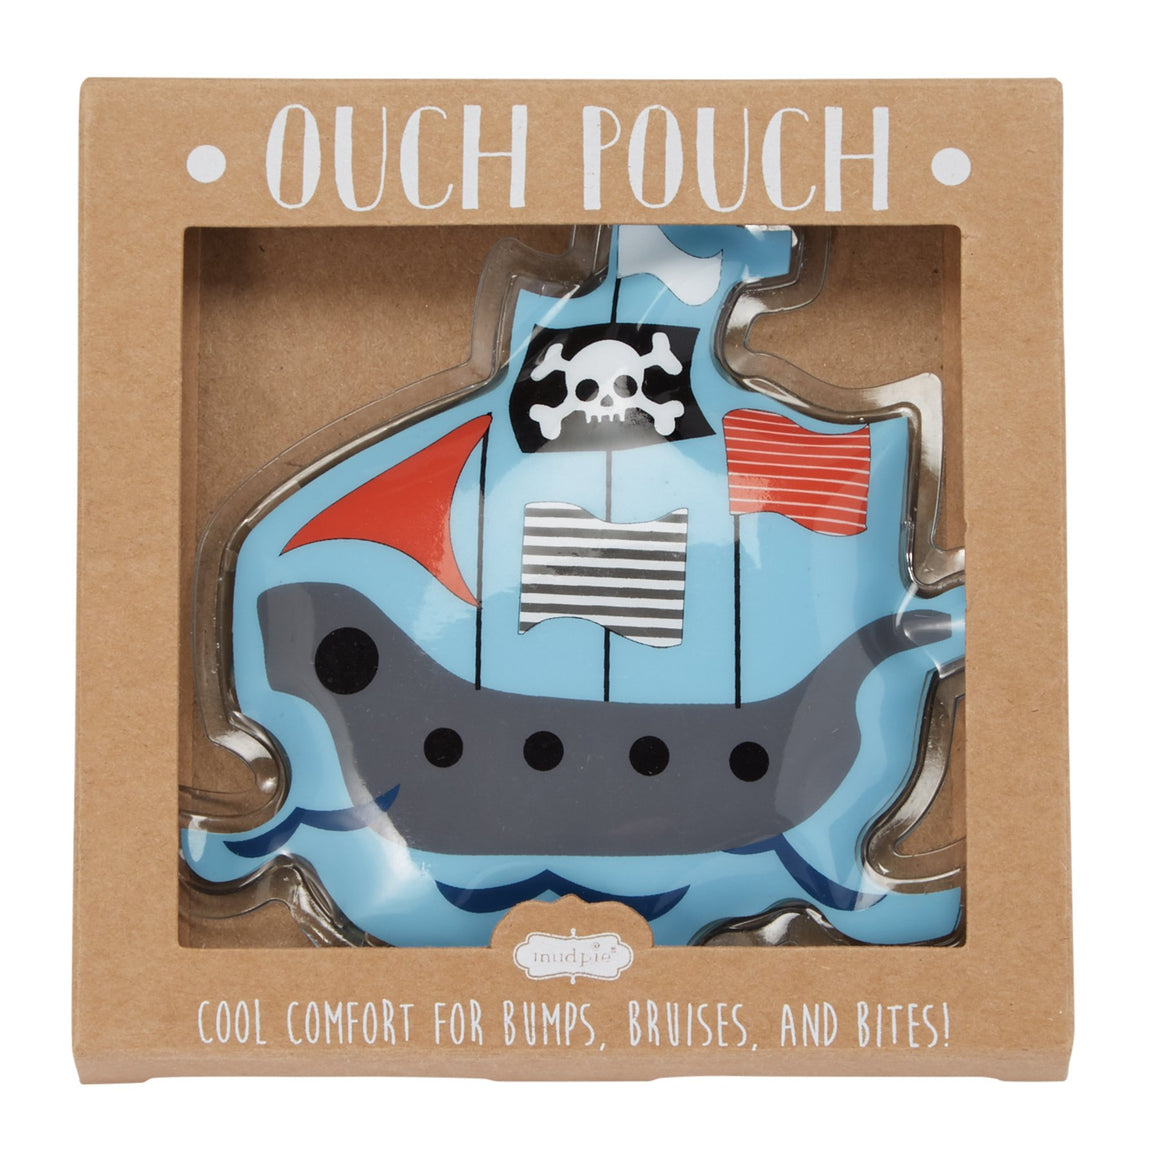 Pirate Ship Ouch Pouch Gel Ice Pack